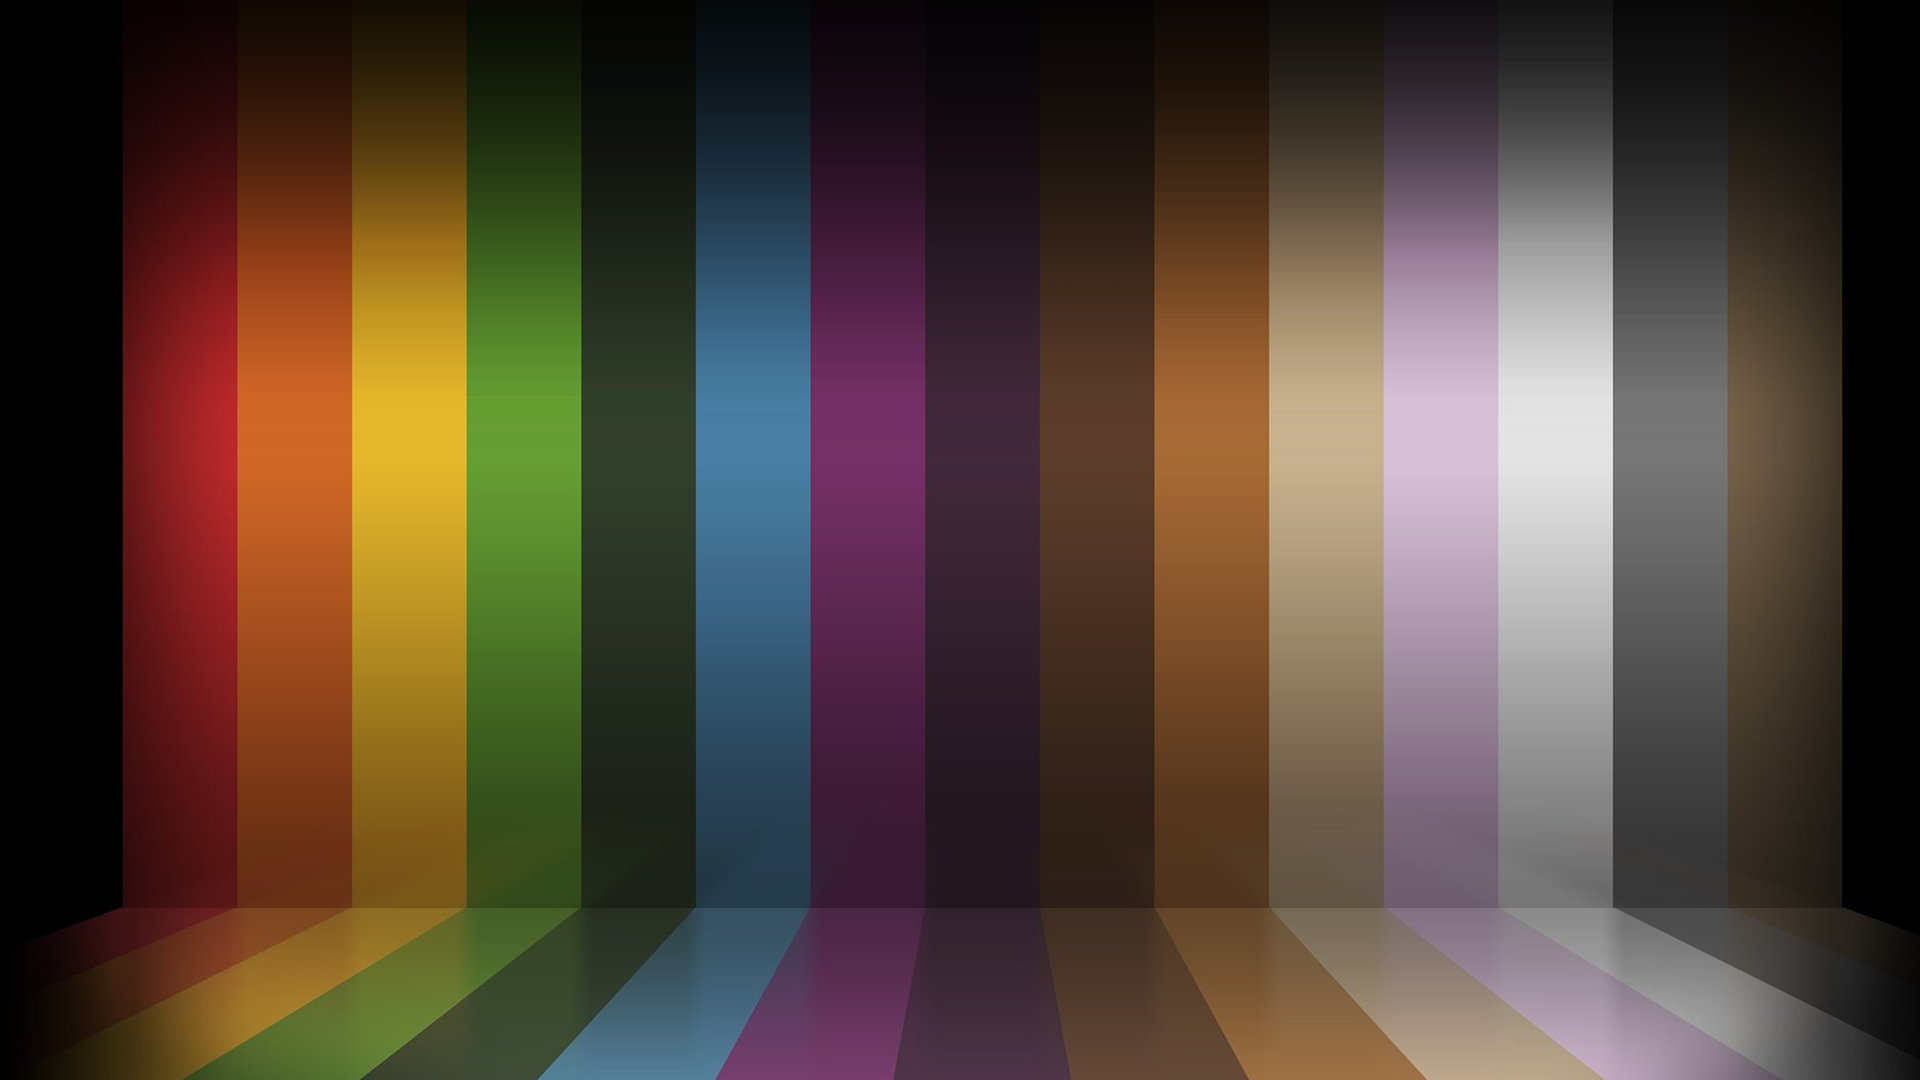 Free download Stripe background ID:137760 full hd 1080p for computer